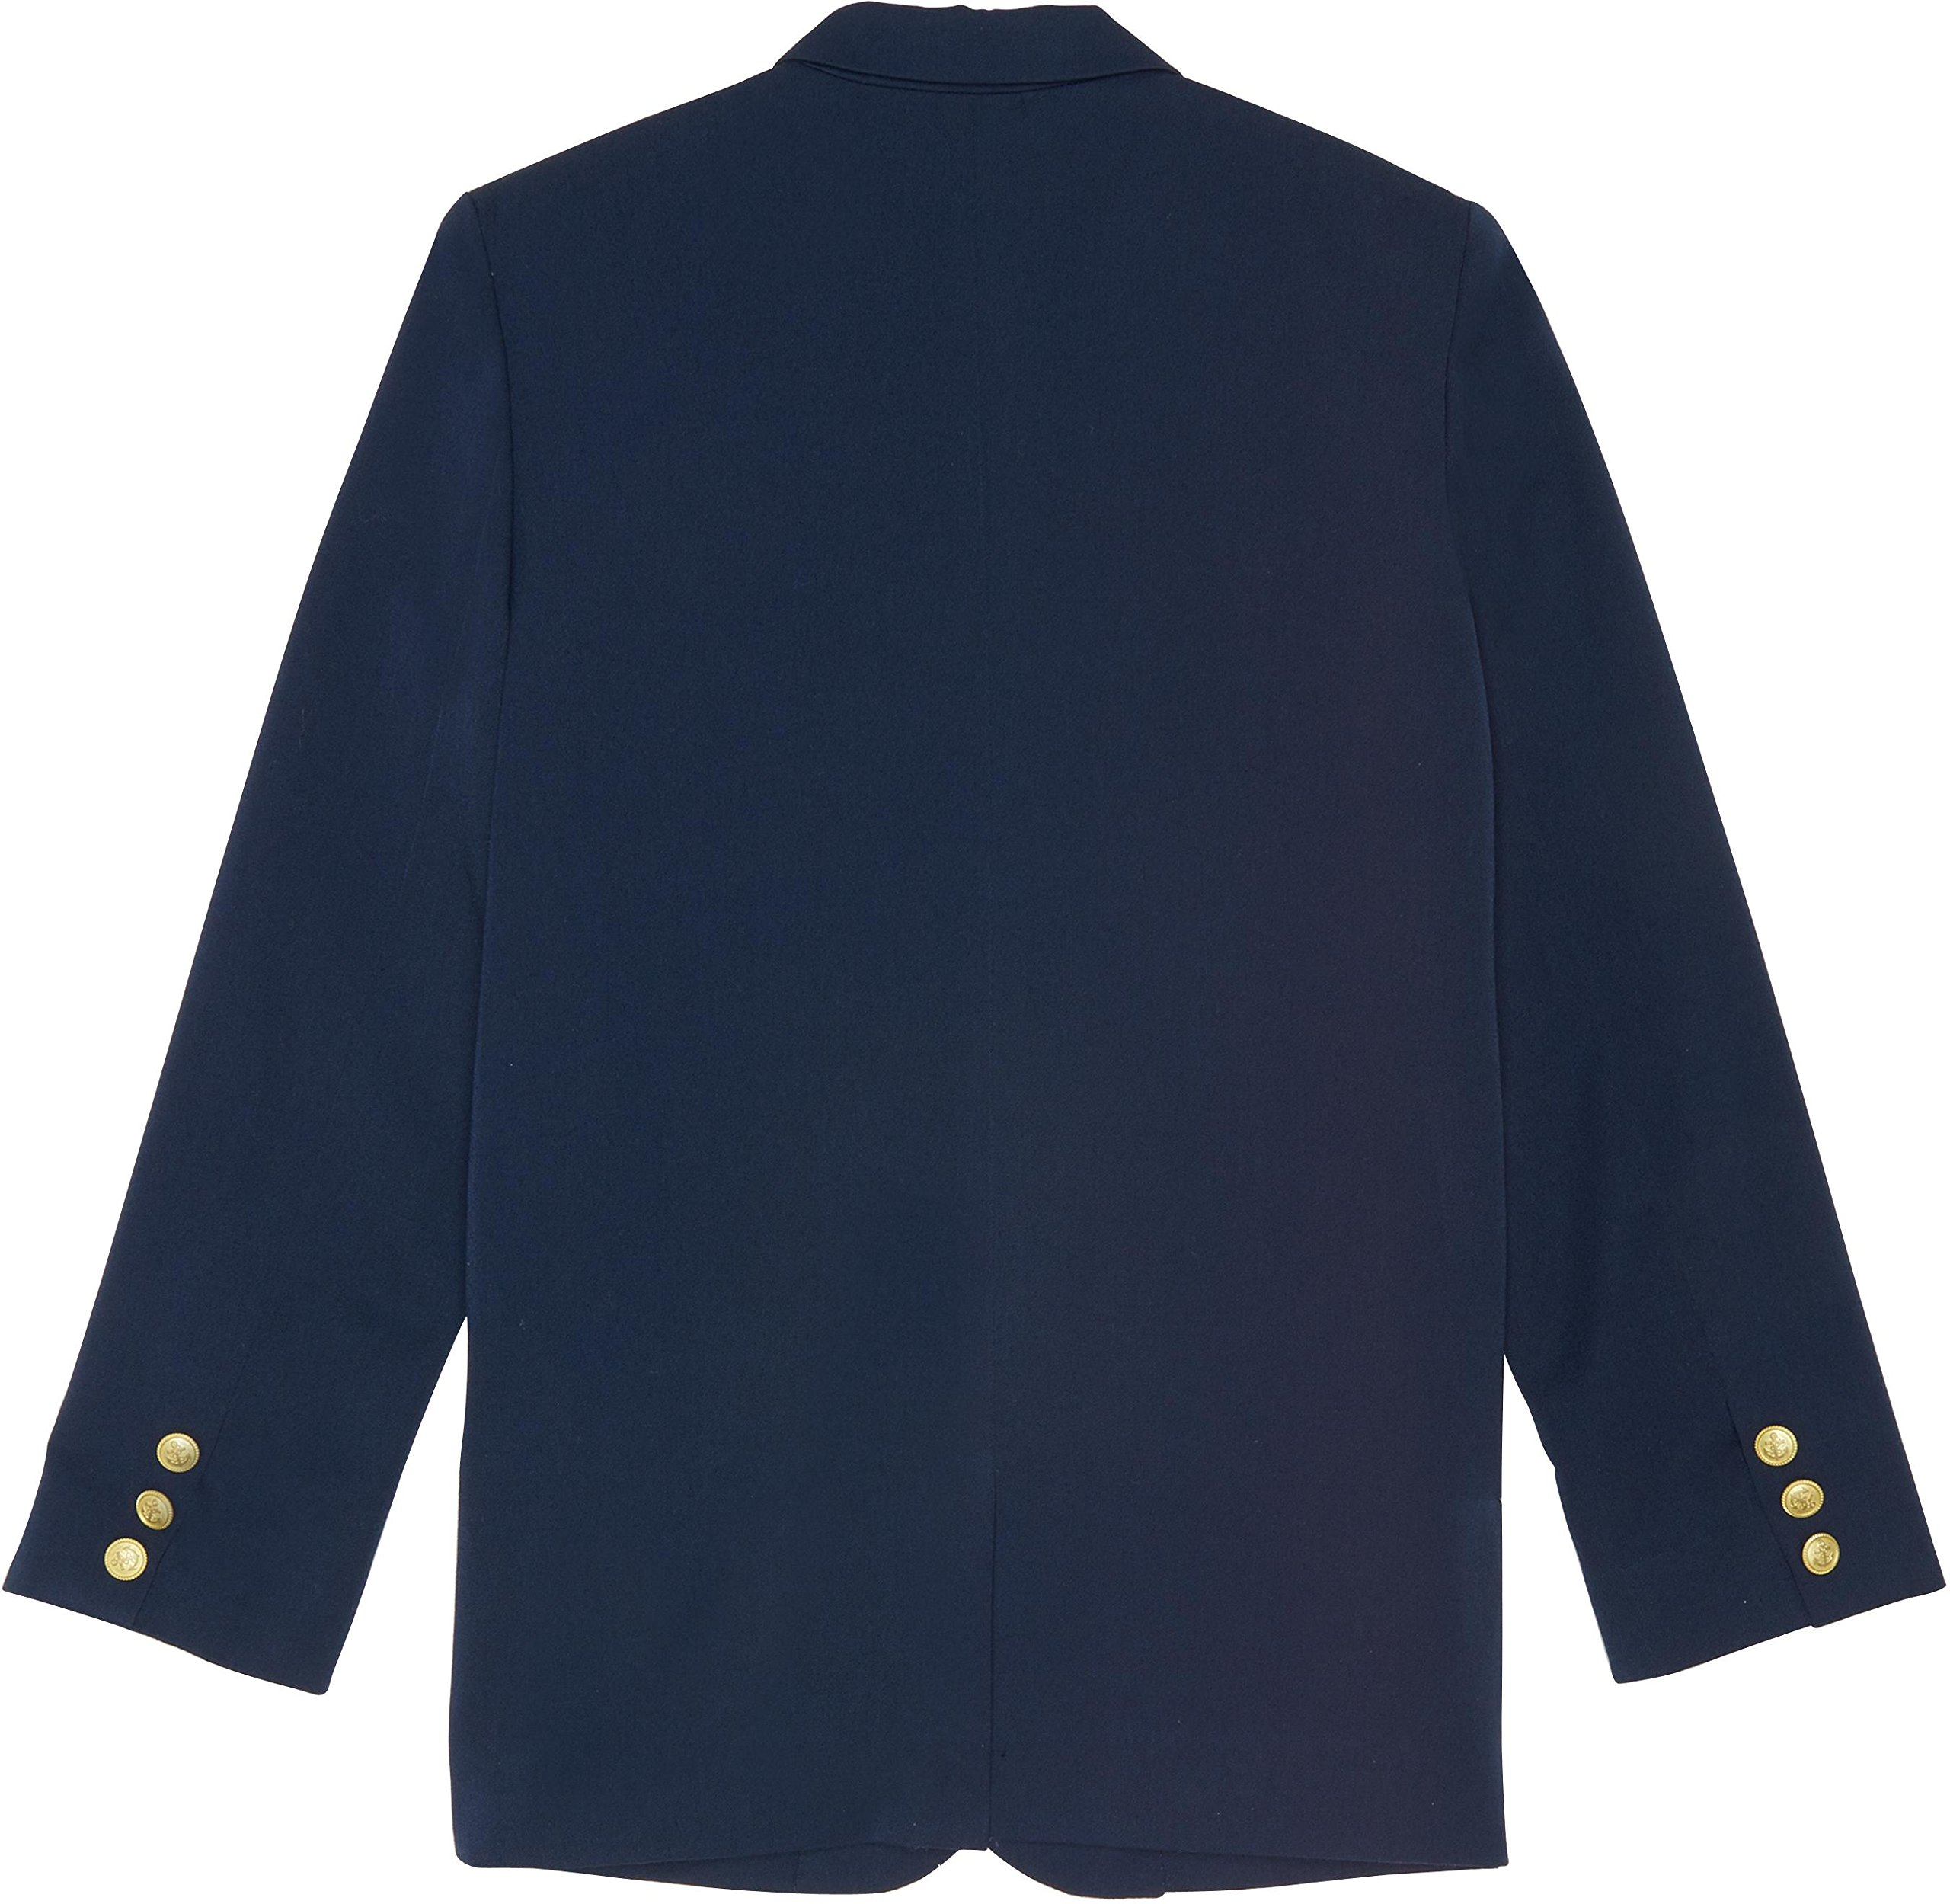 French Toast School Uniform Boys Classic School Blazer, Navy, 10 by French Toast (Image #2)